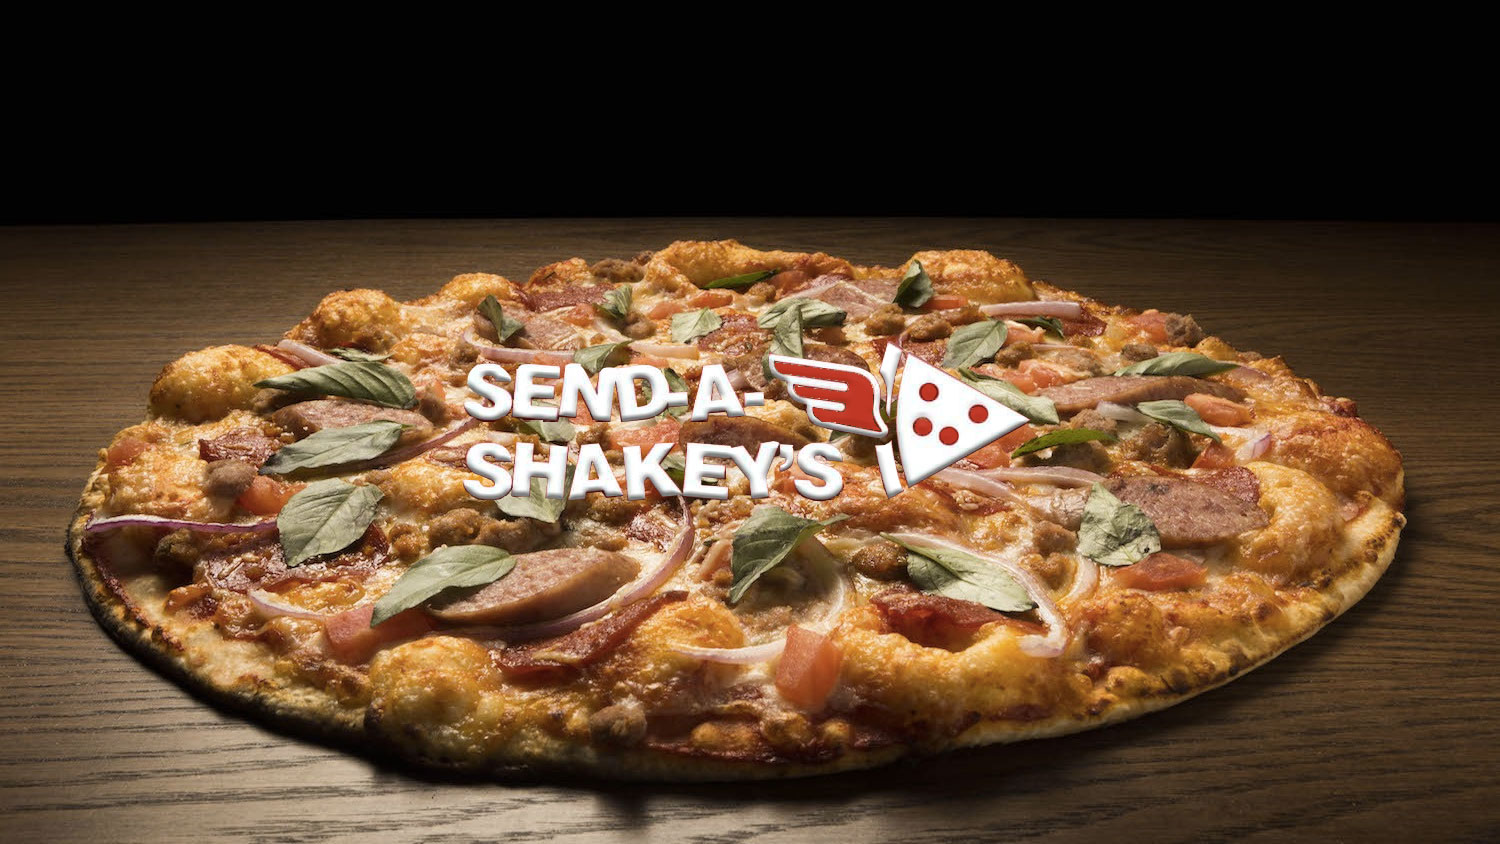 Send A Shakey's to your mom this Mother's Day